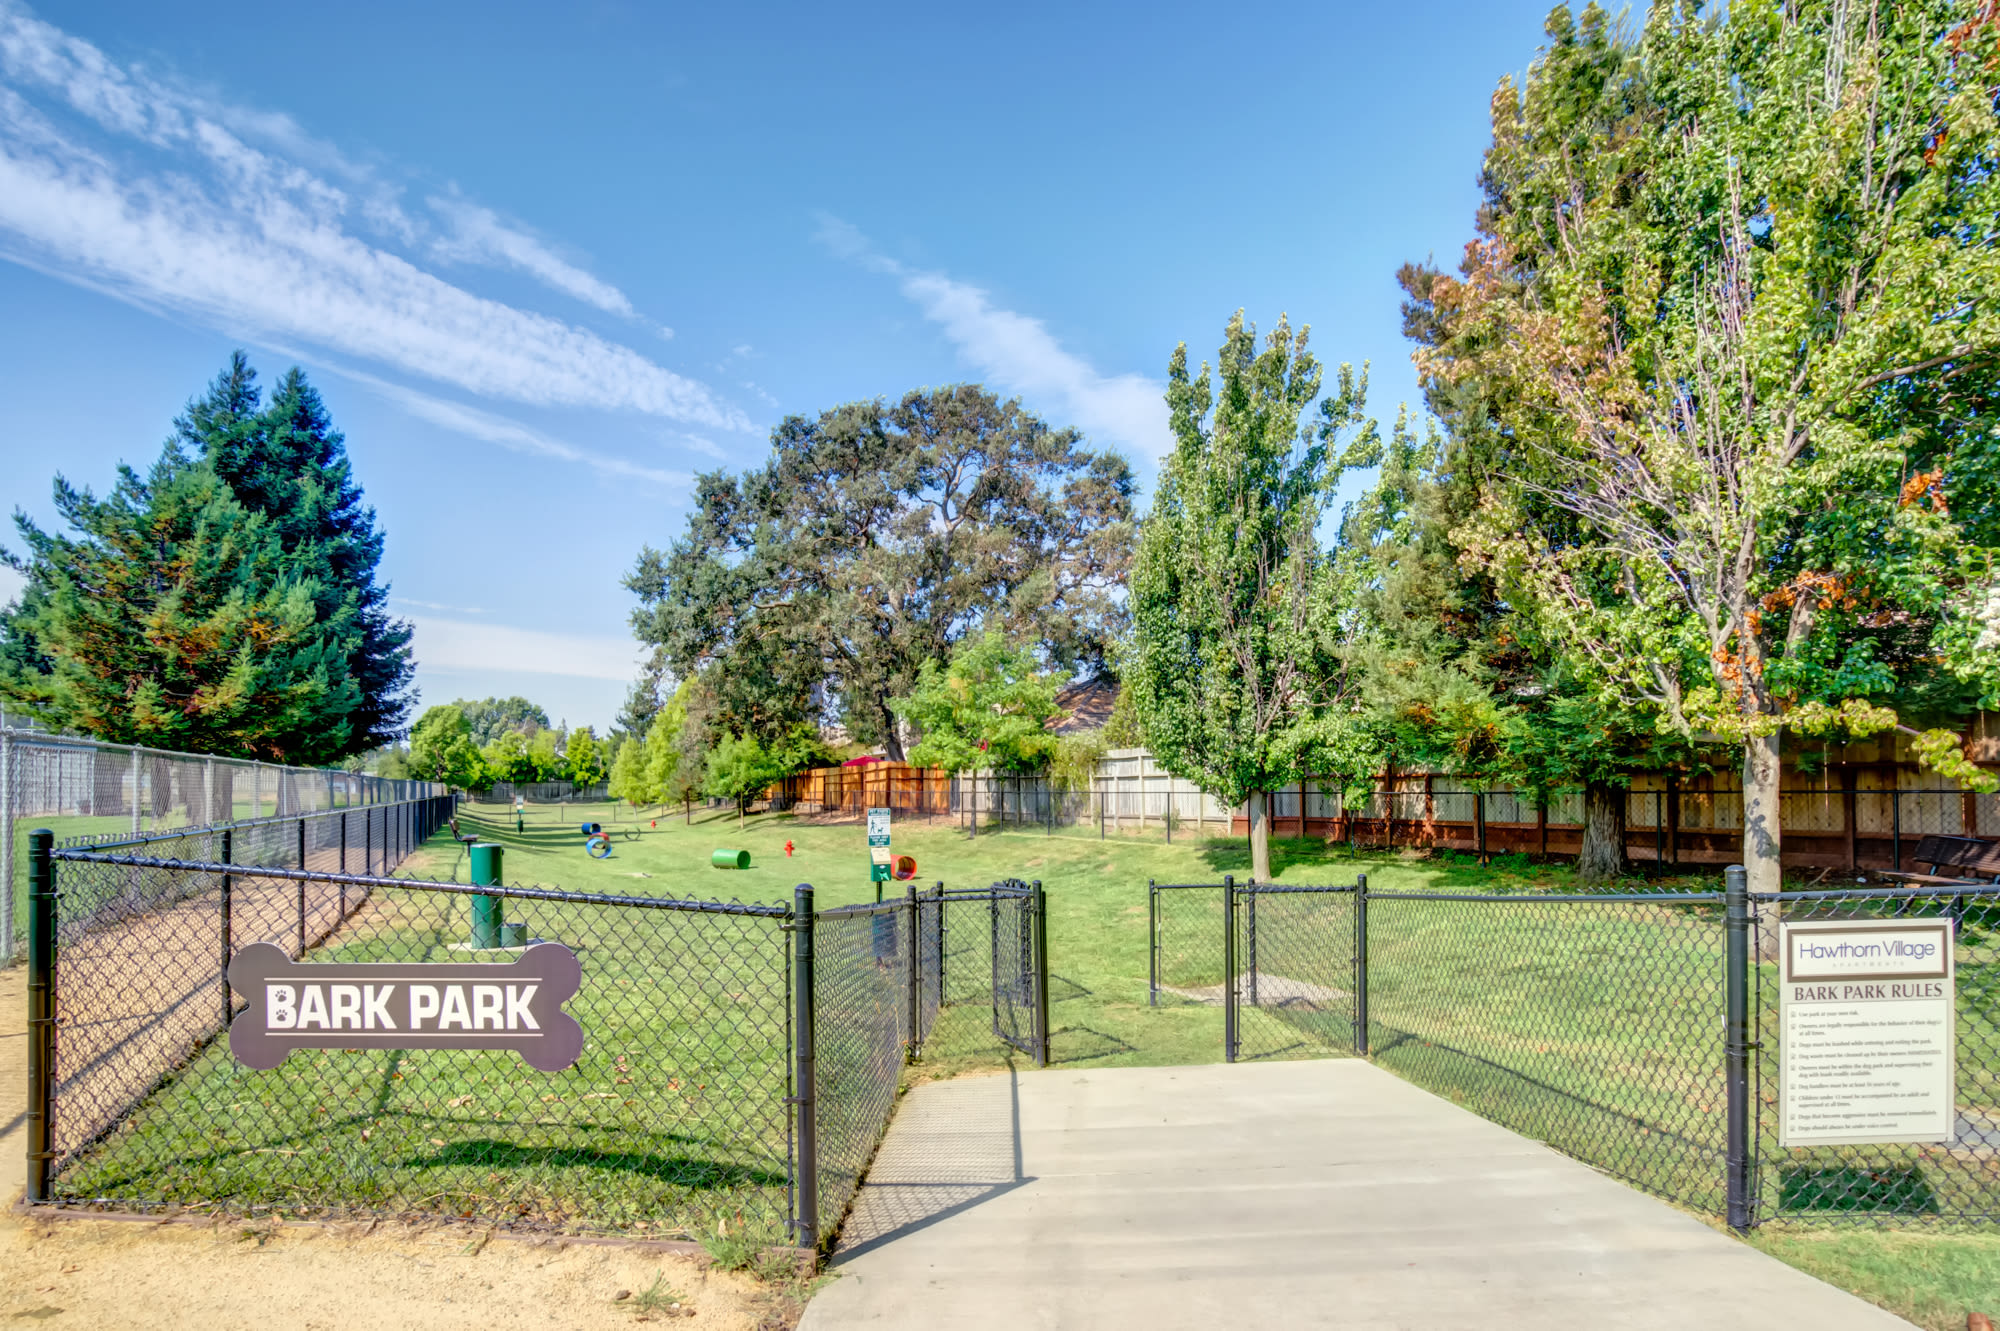 Hawthorn Village Apartments in Napa Features a Large Dog Park